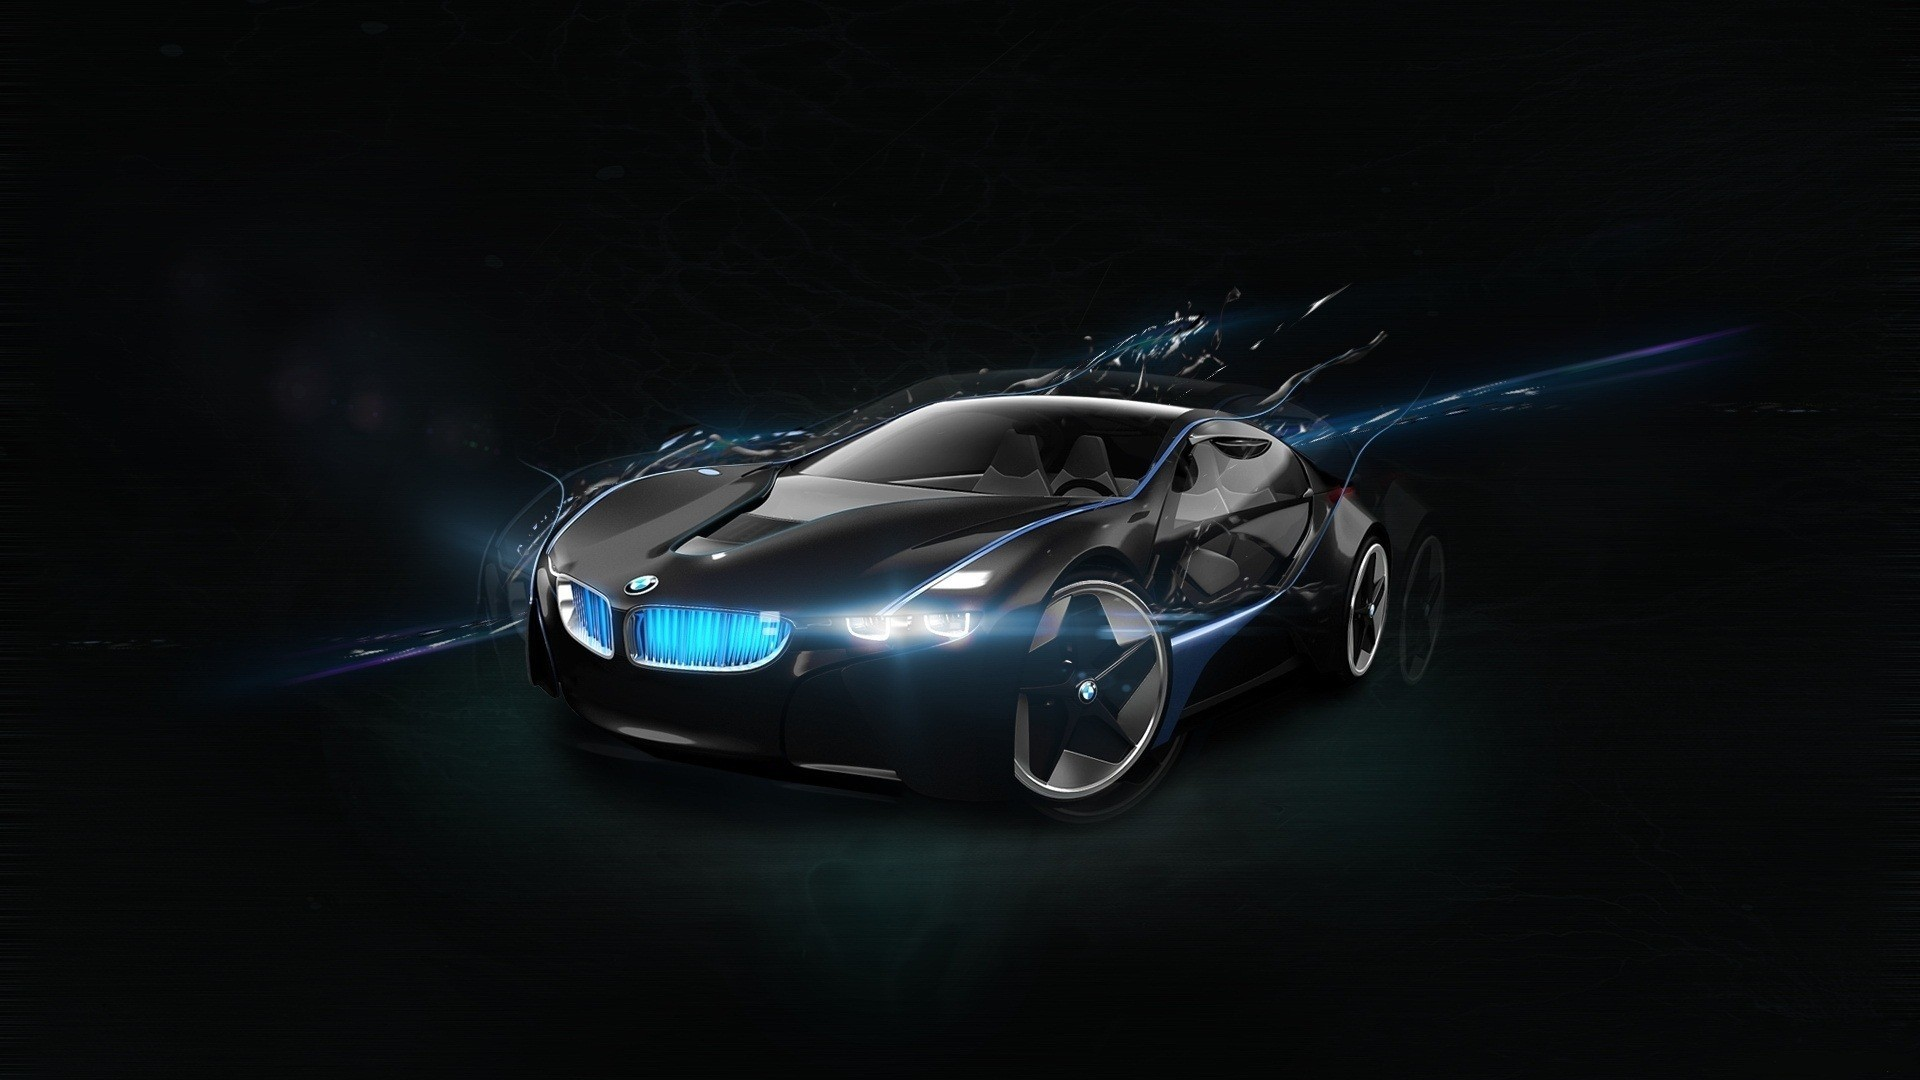 BMW Vision Super Car 674.93 Kb